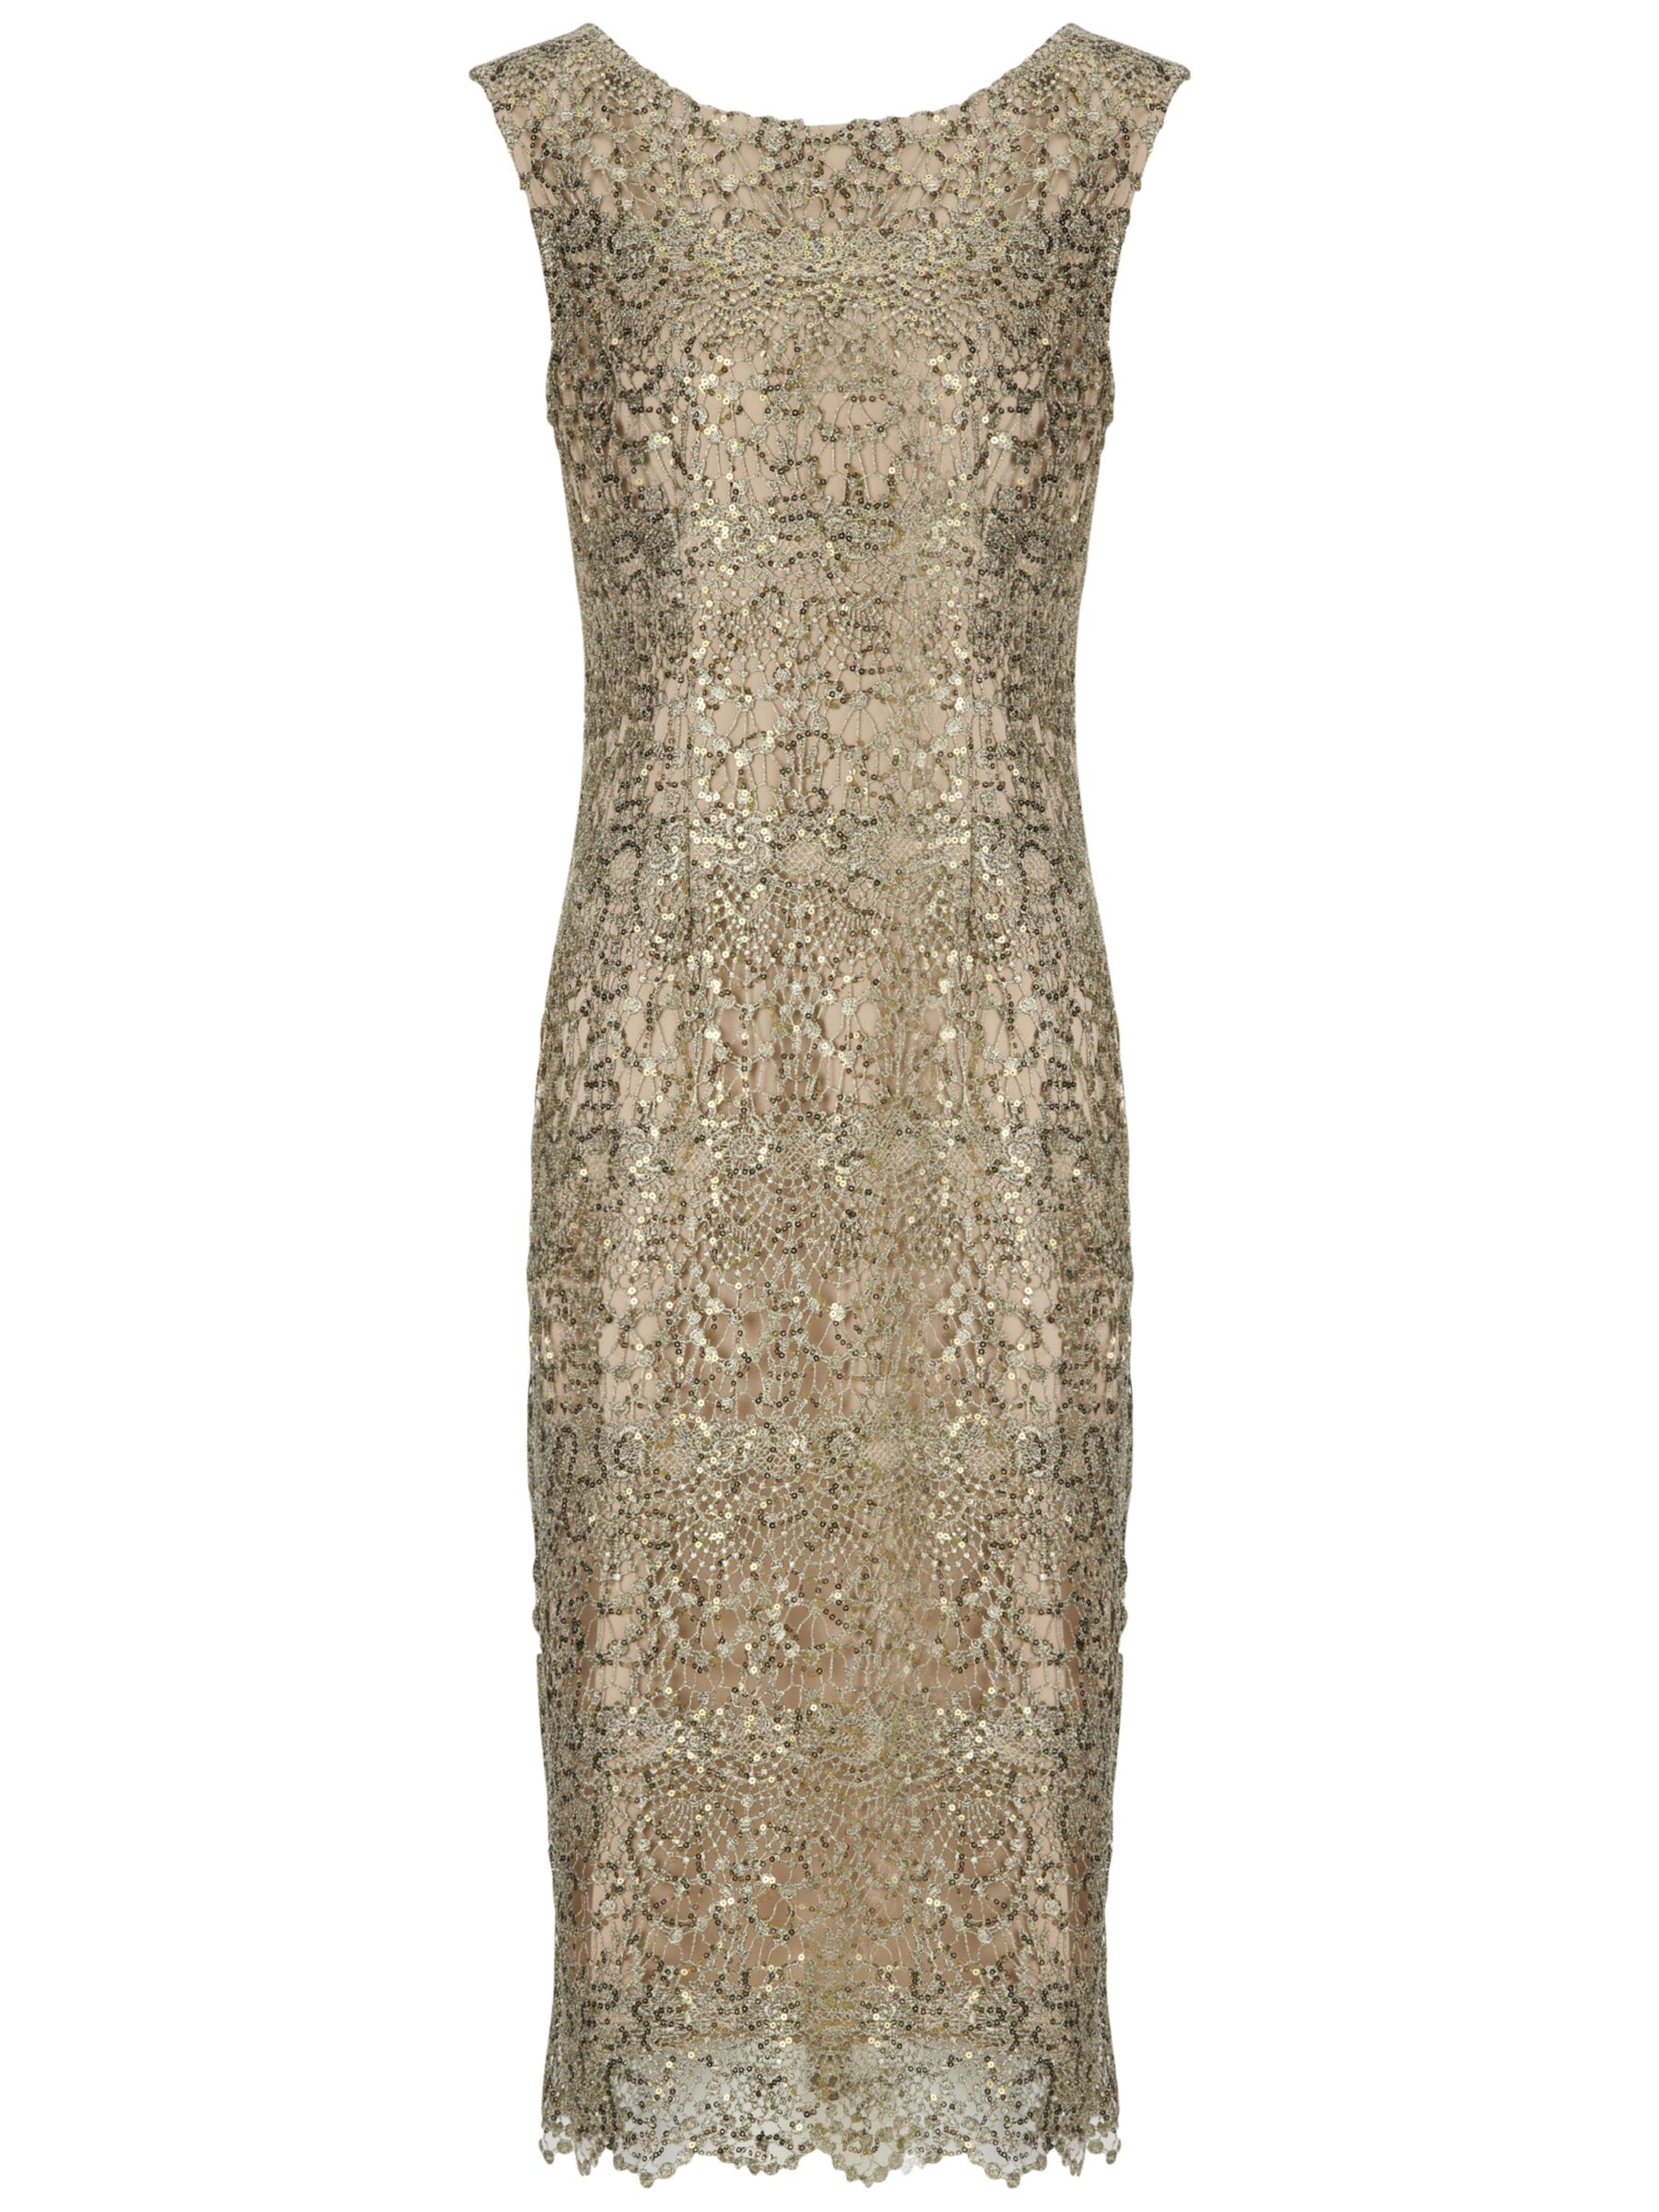 Gina Bacconi Sequin Lace Dress, Gold